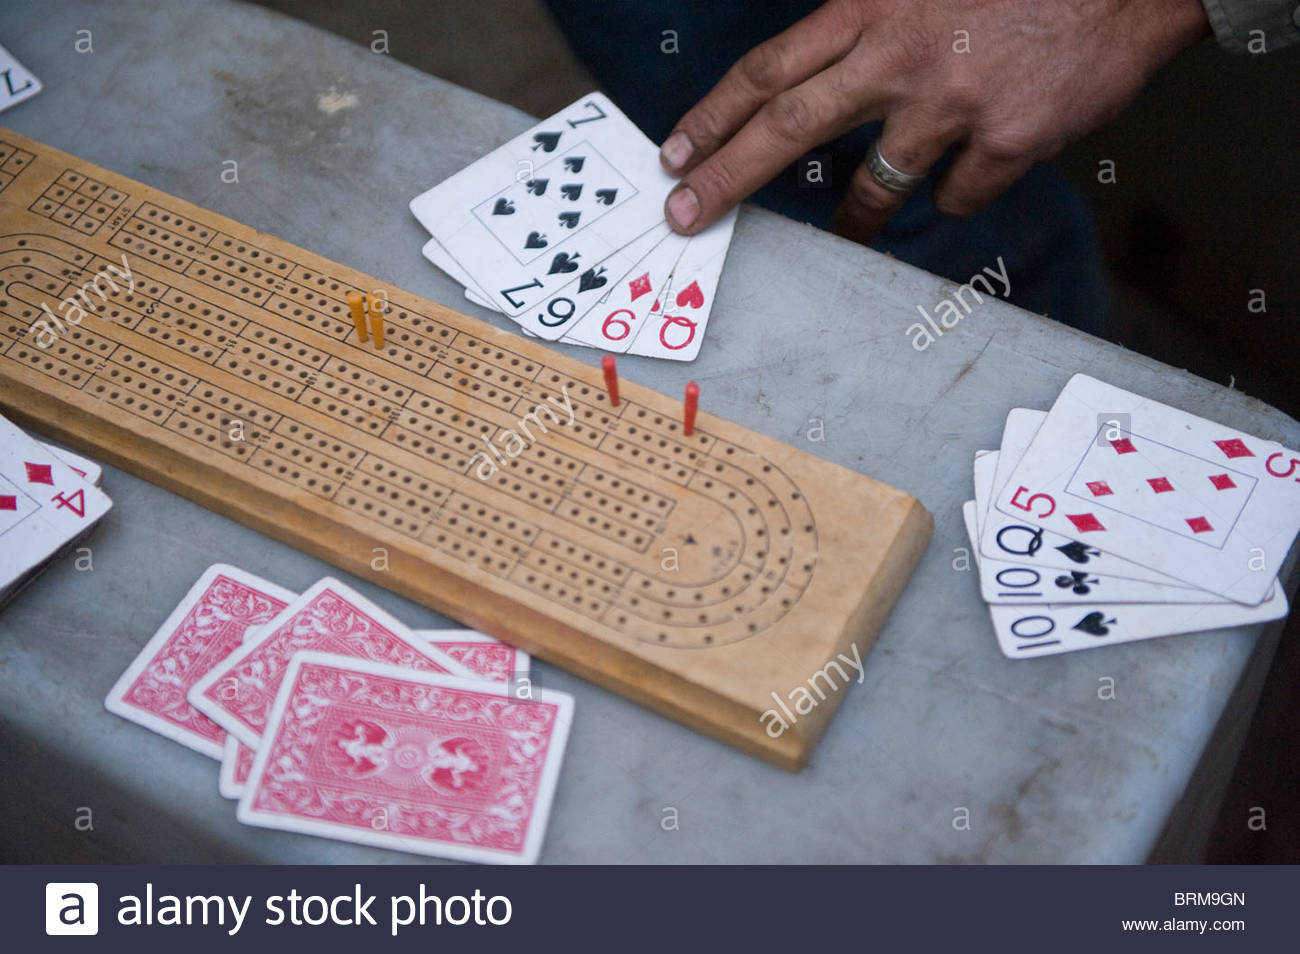 A card game being played in Kings Canyon National Park, CA. - Stock Image